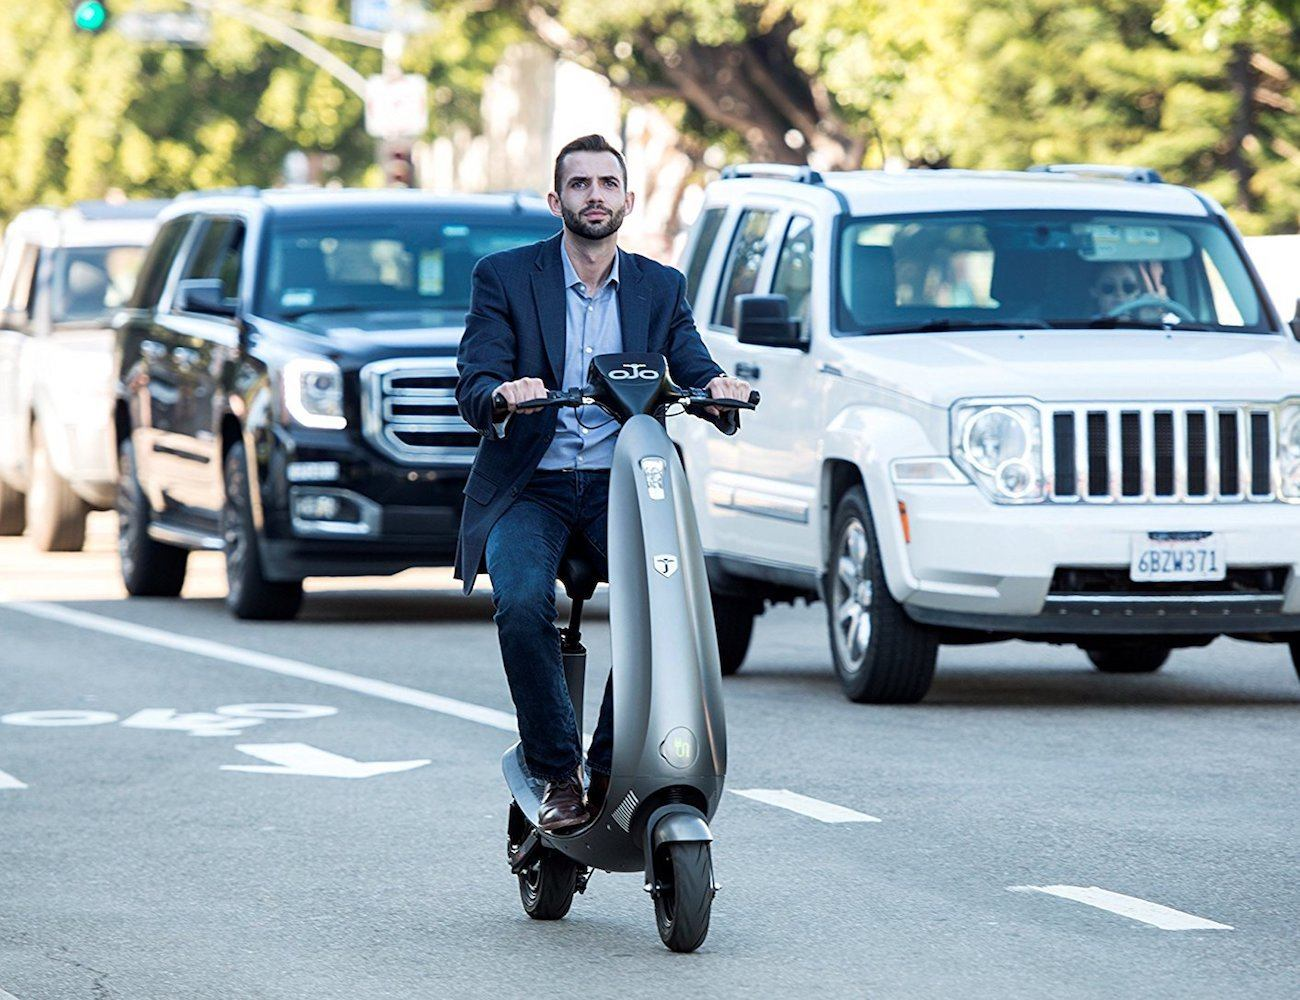 OjO Commuter Electric Scooter